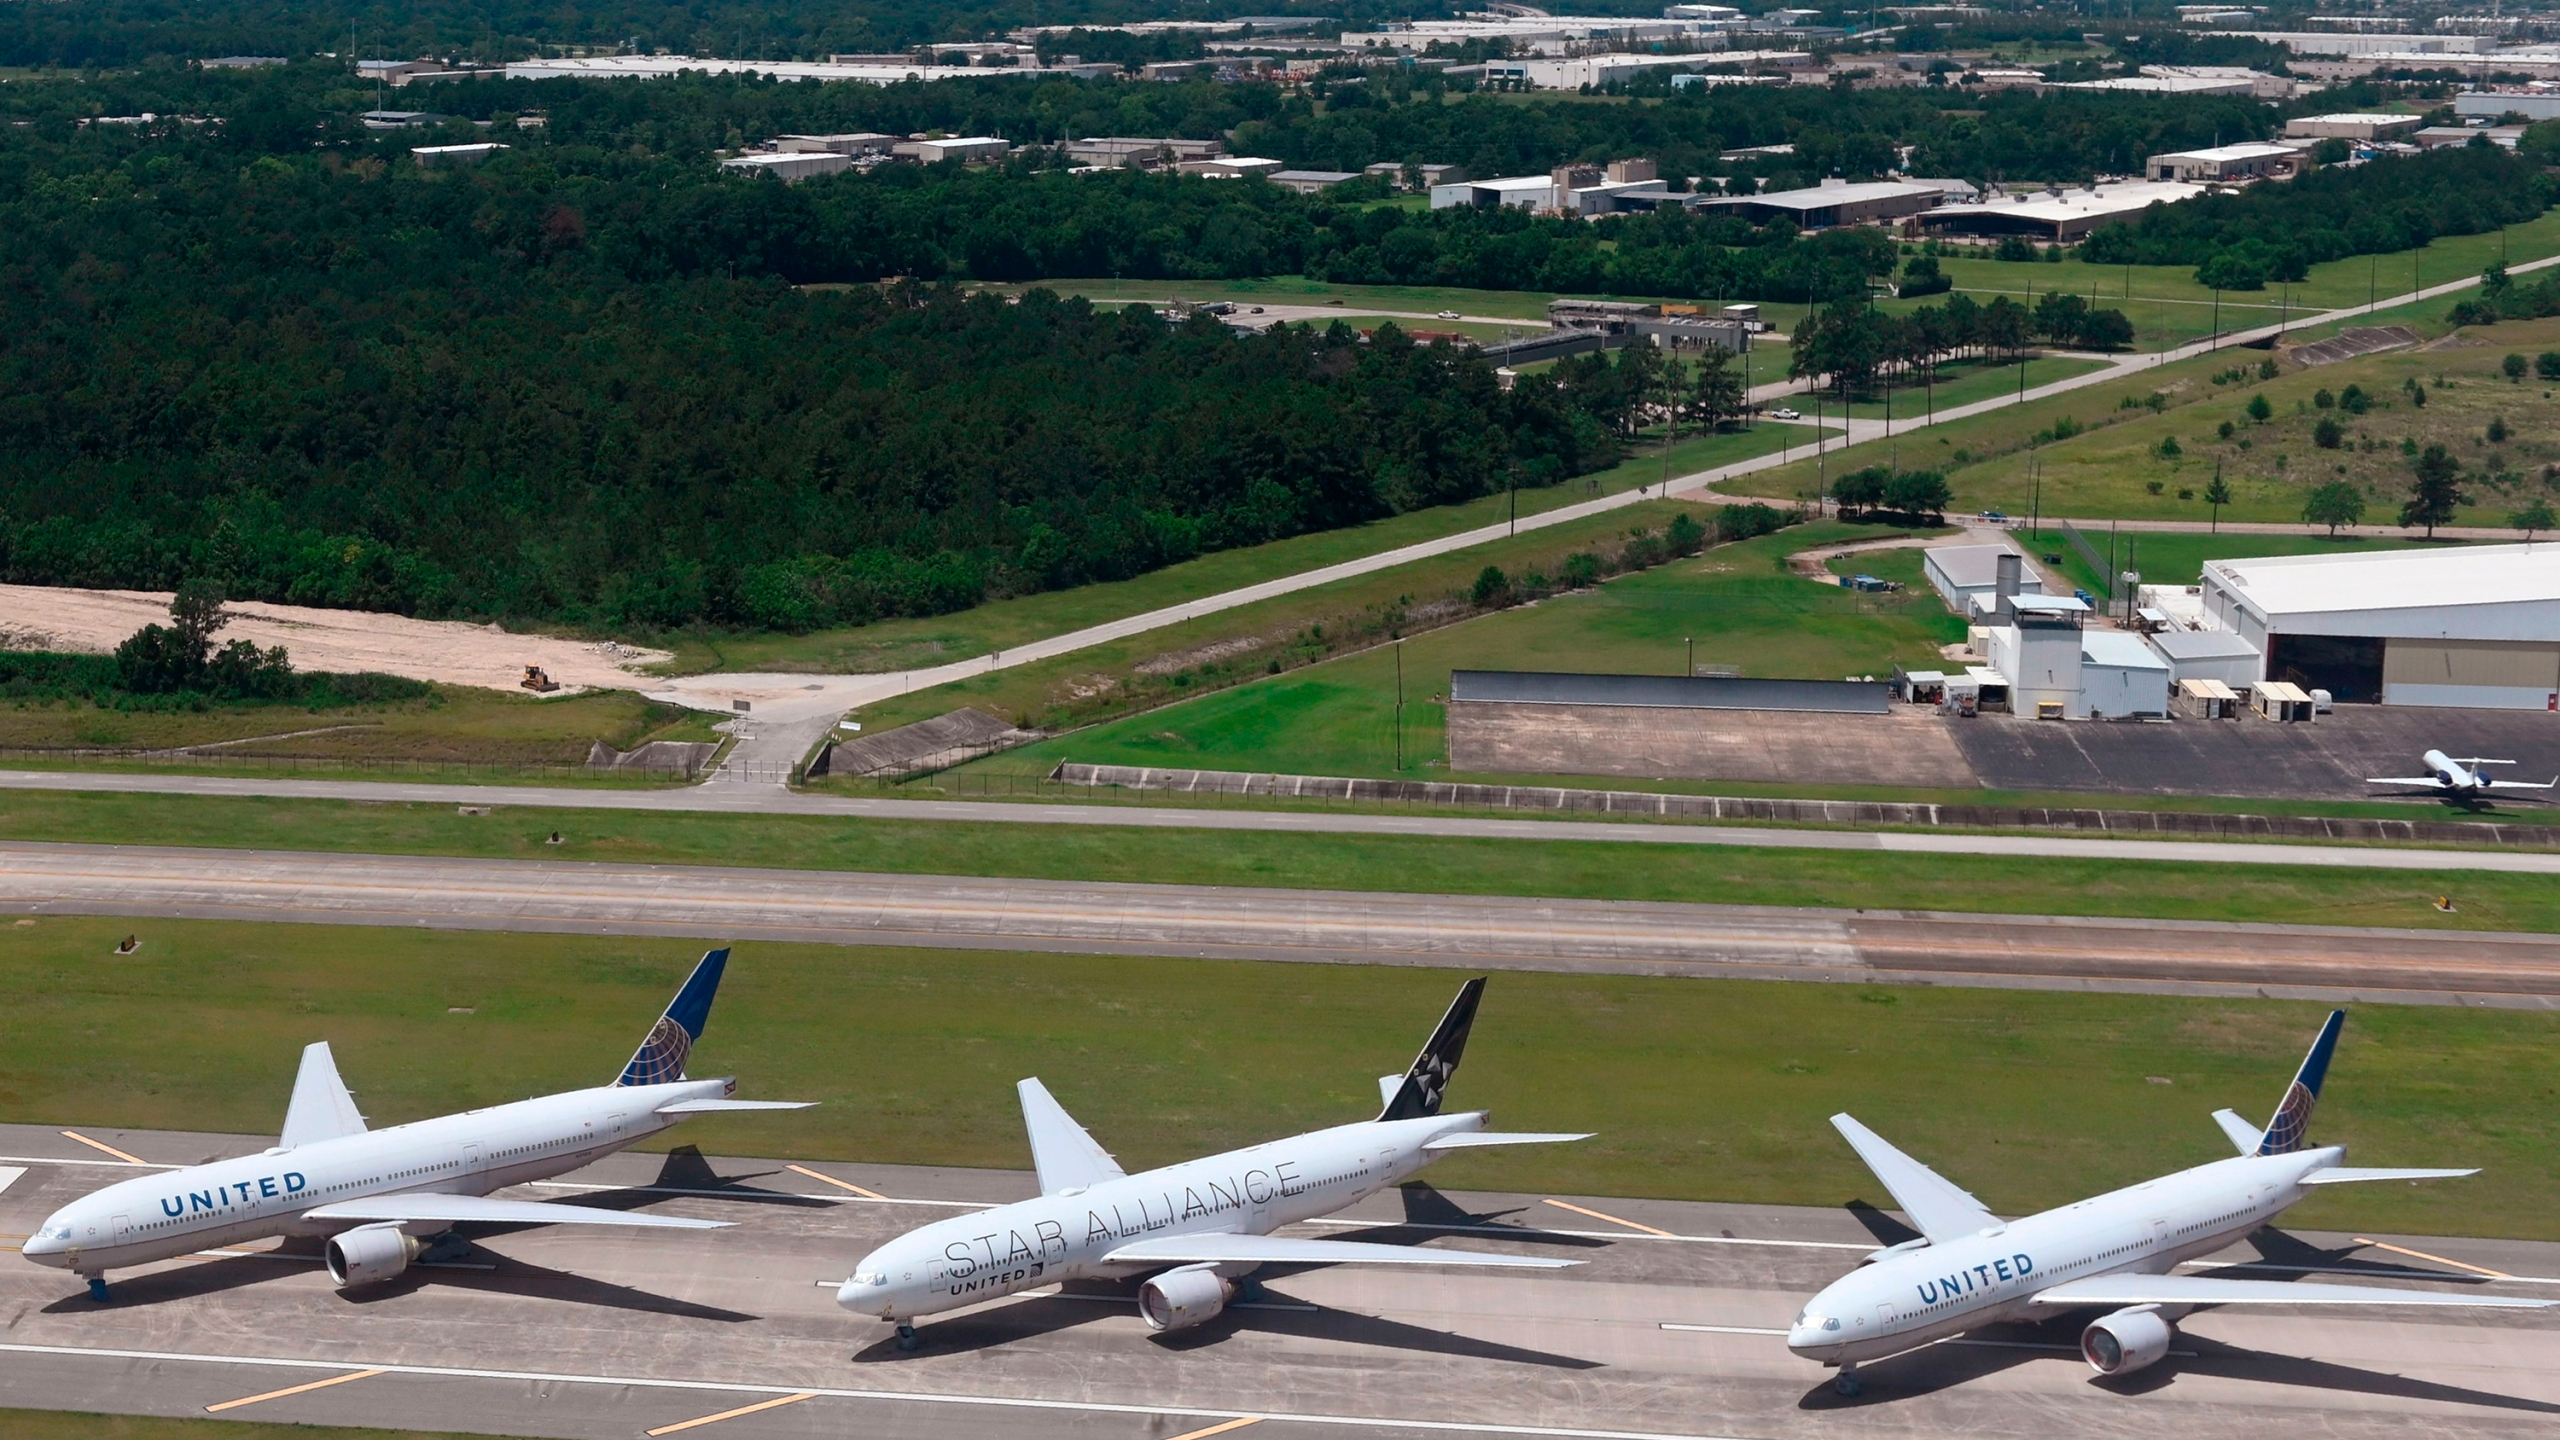 United Airlines planes are parked at George Bush International Airport in Houston, Texas on June 10, 2020. (Photo by ANDREW CABALLERO-REYNOLDS / AFP) (Photo by ANDREW CABALLERO-REYNOLDS/AFP via Getty Images)